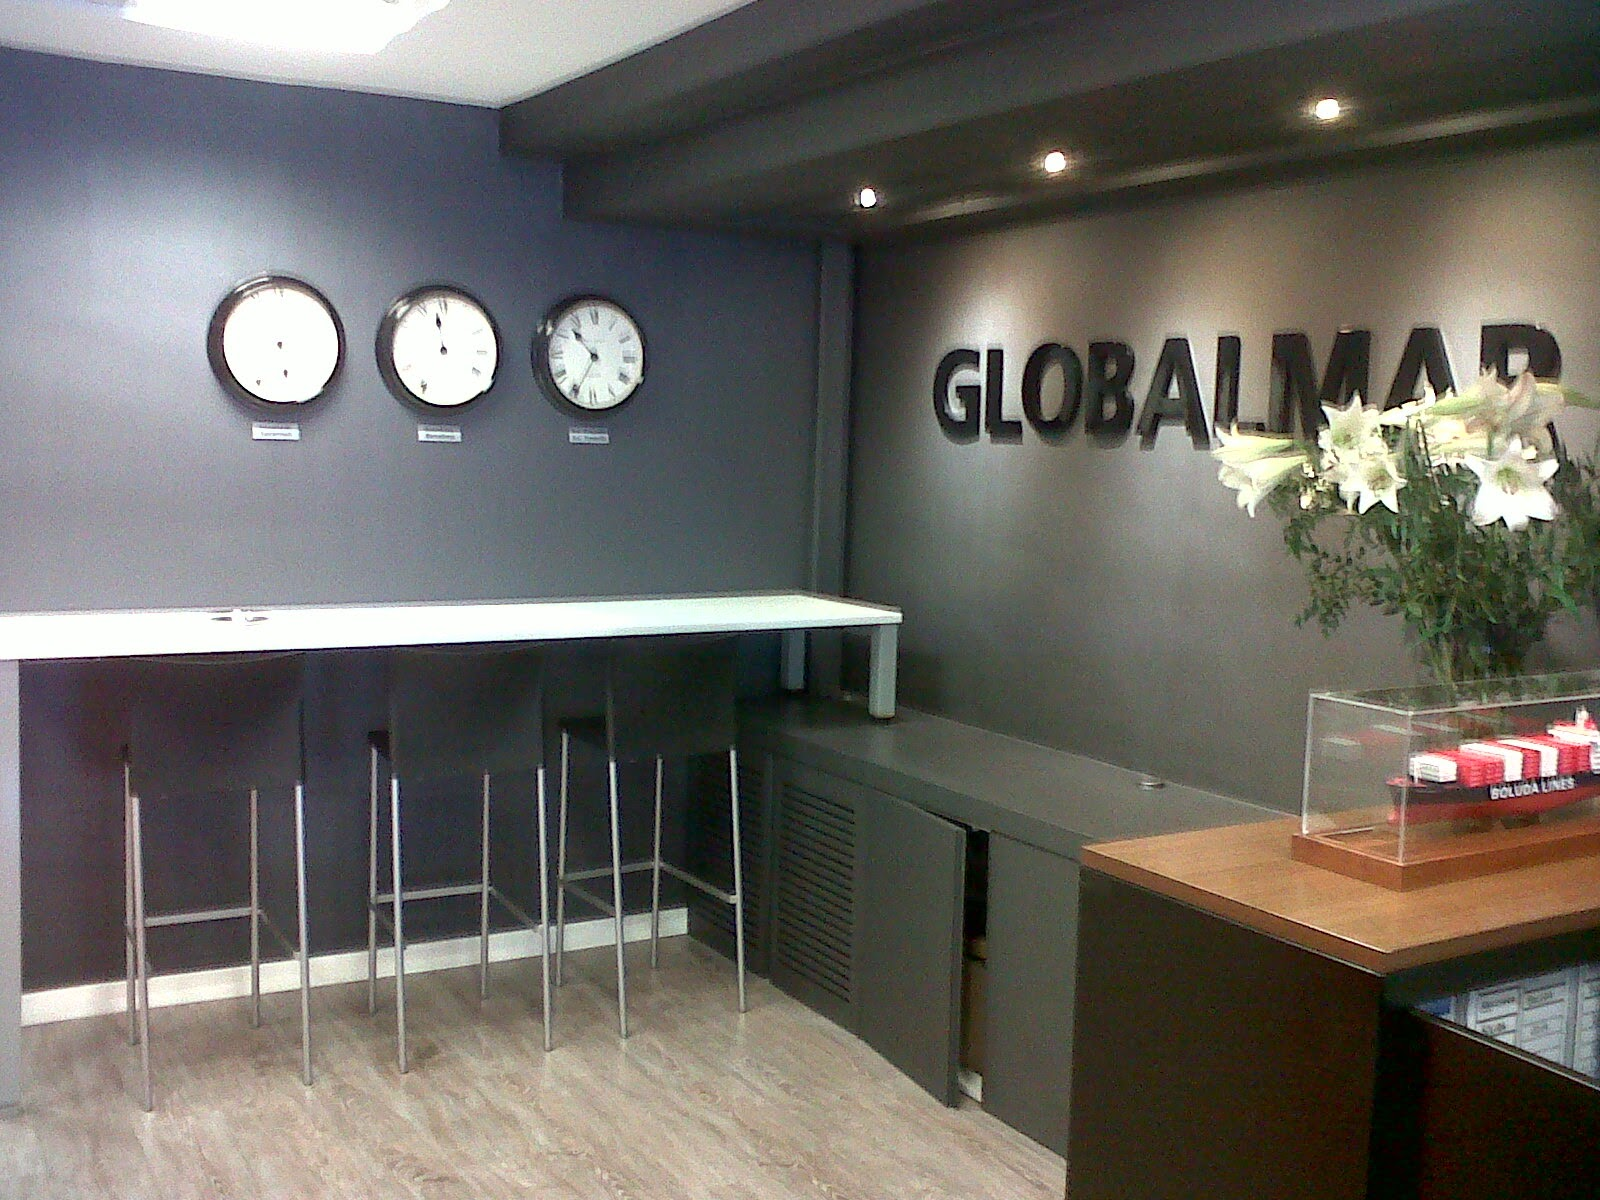 Reloj Laura Ashley Decoración Hogar - Globalmar